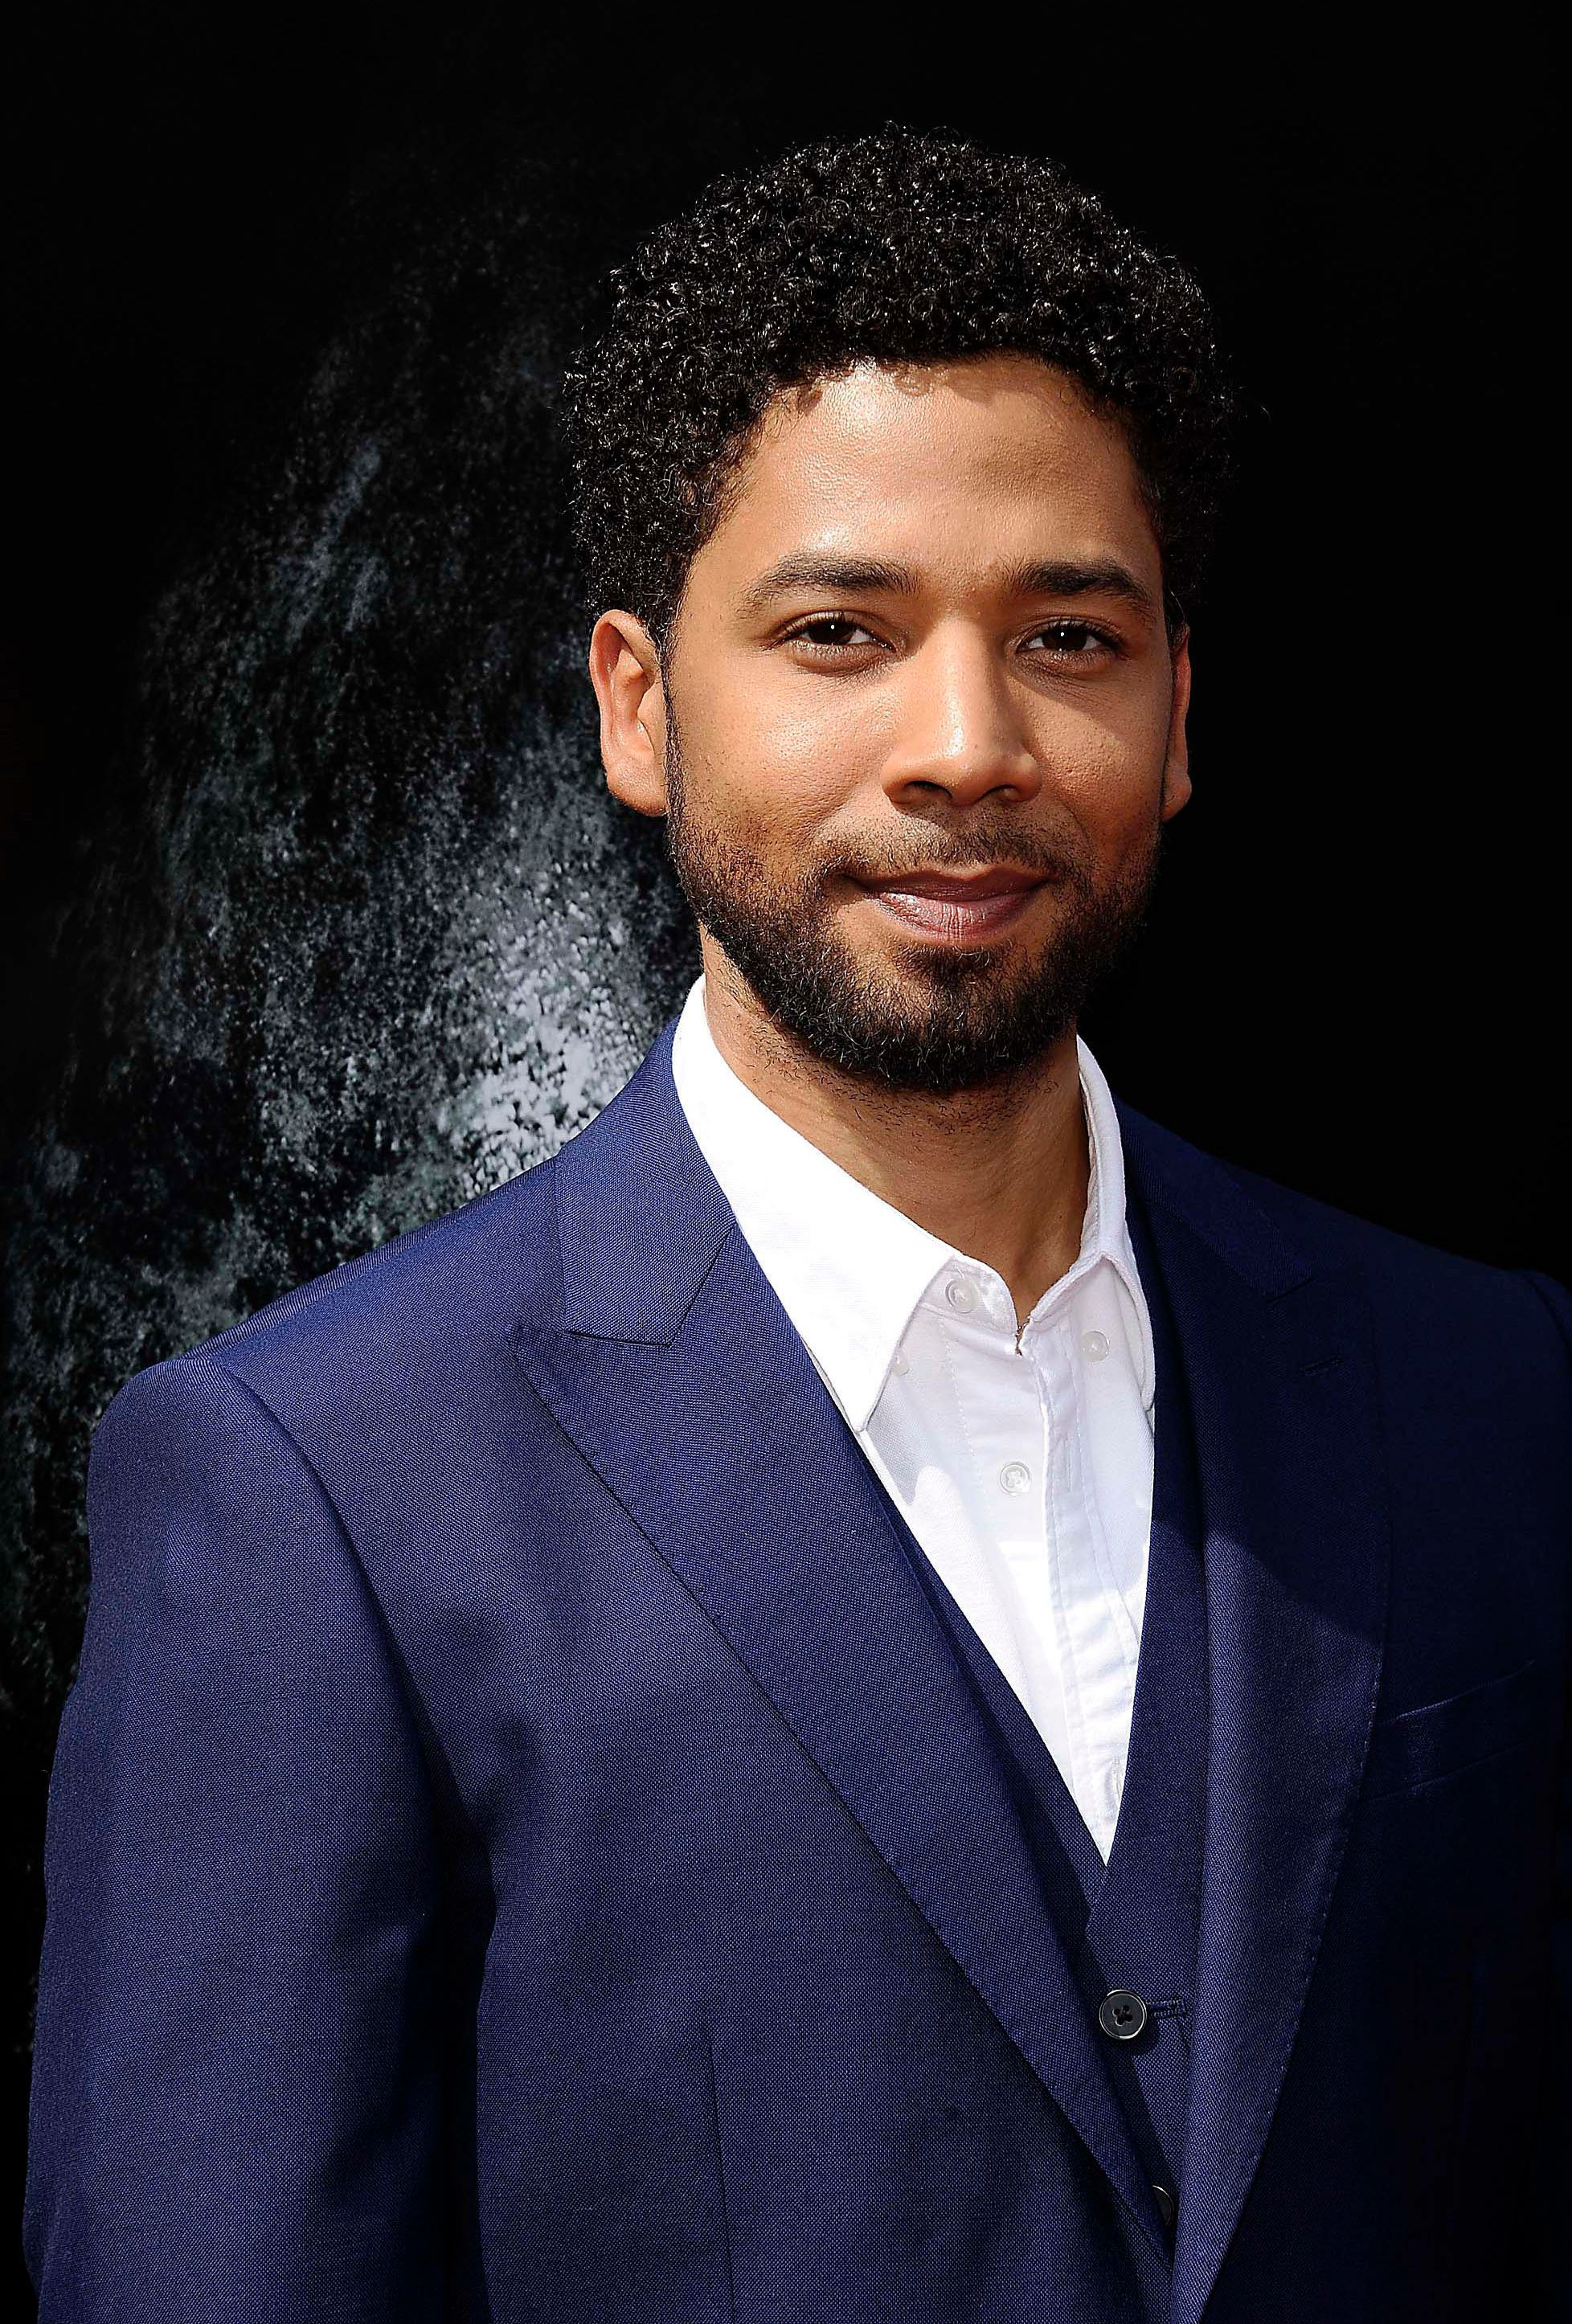 Jussie Smollett Accused Of Staging Attack Due To Salary Woes Chicago Police